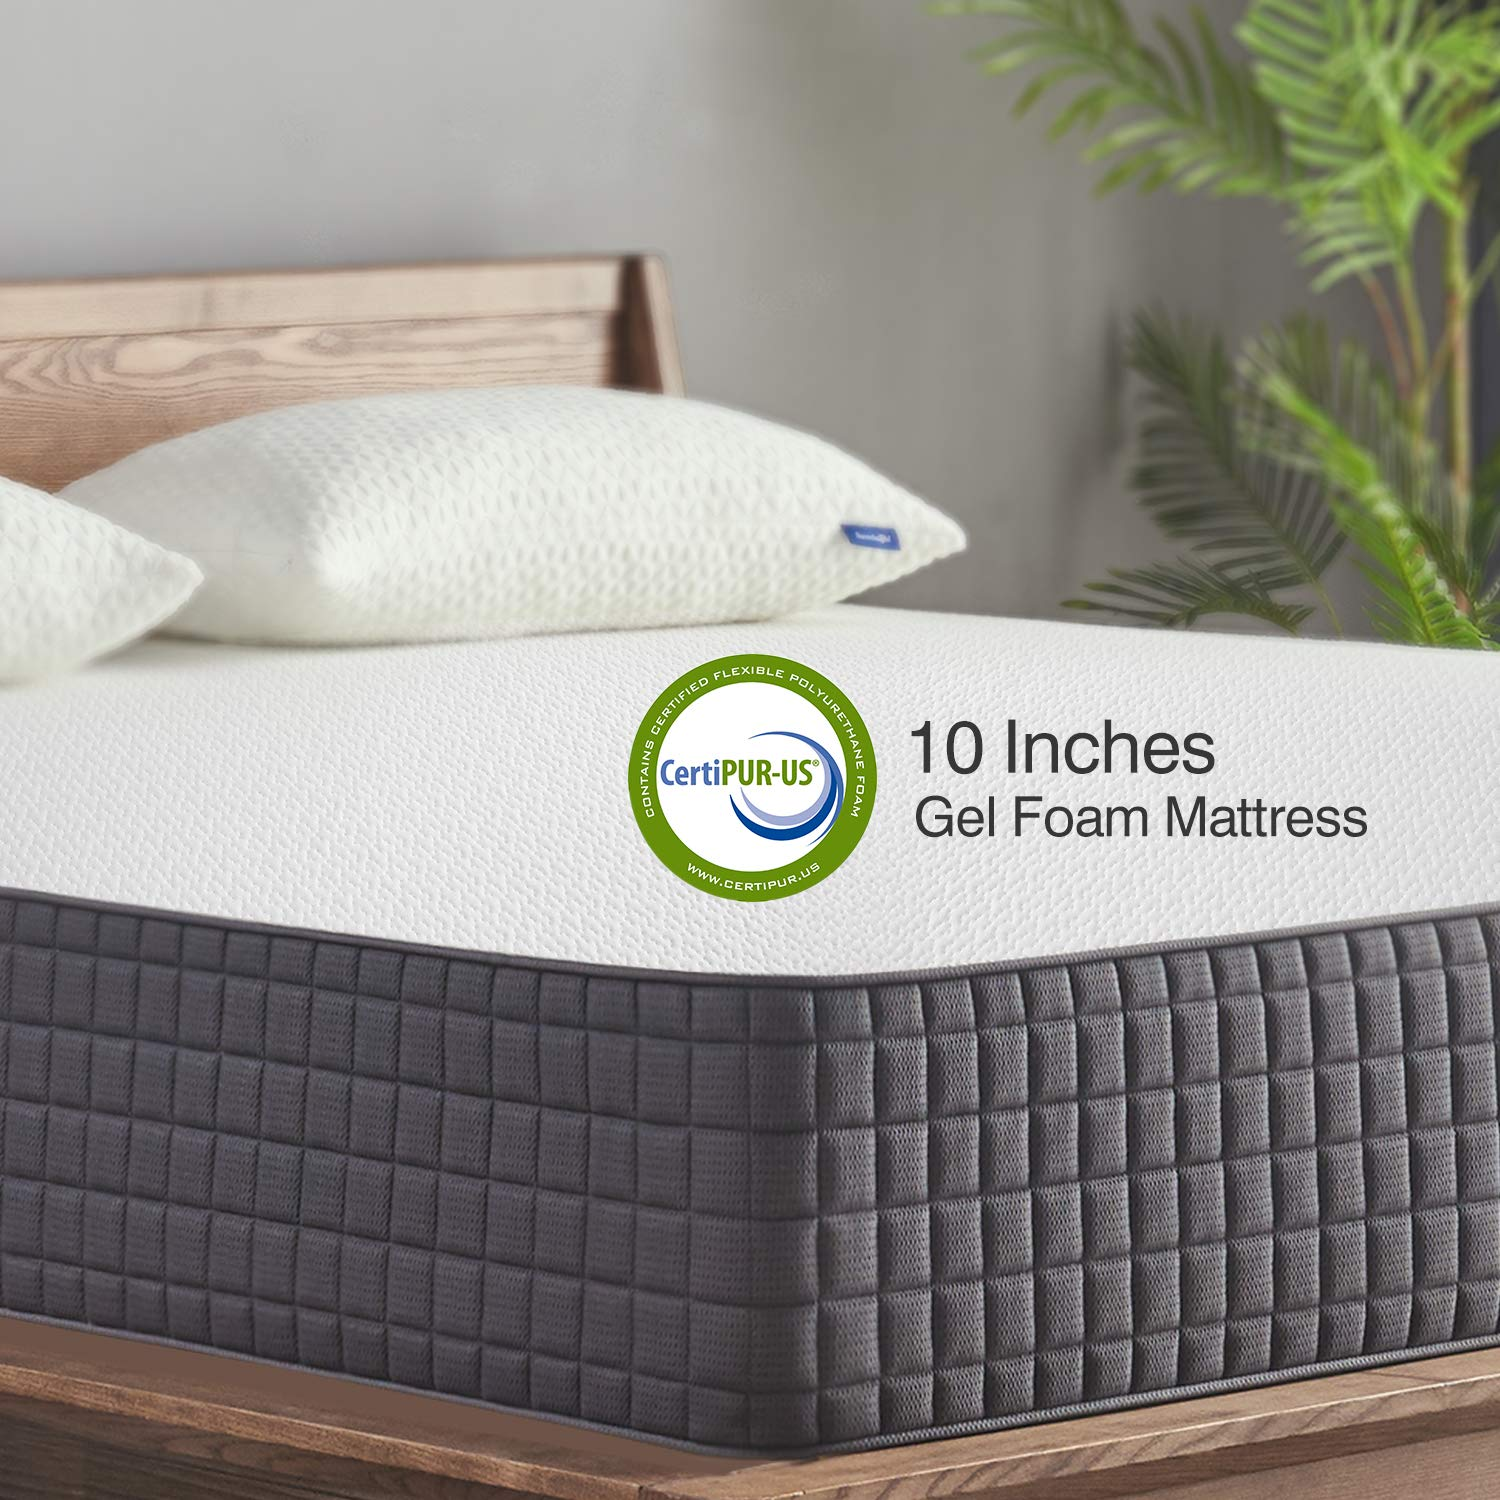 Queen Mattress – Sweetnight 10 Inch Queen Size Mattress-Infused Gel Memory Foam Mattress for Back Pain Relief Cool Sleep, Medium Firm with CertiPUR-US Certified, 10 Years Warranty